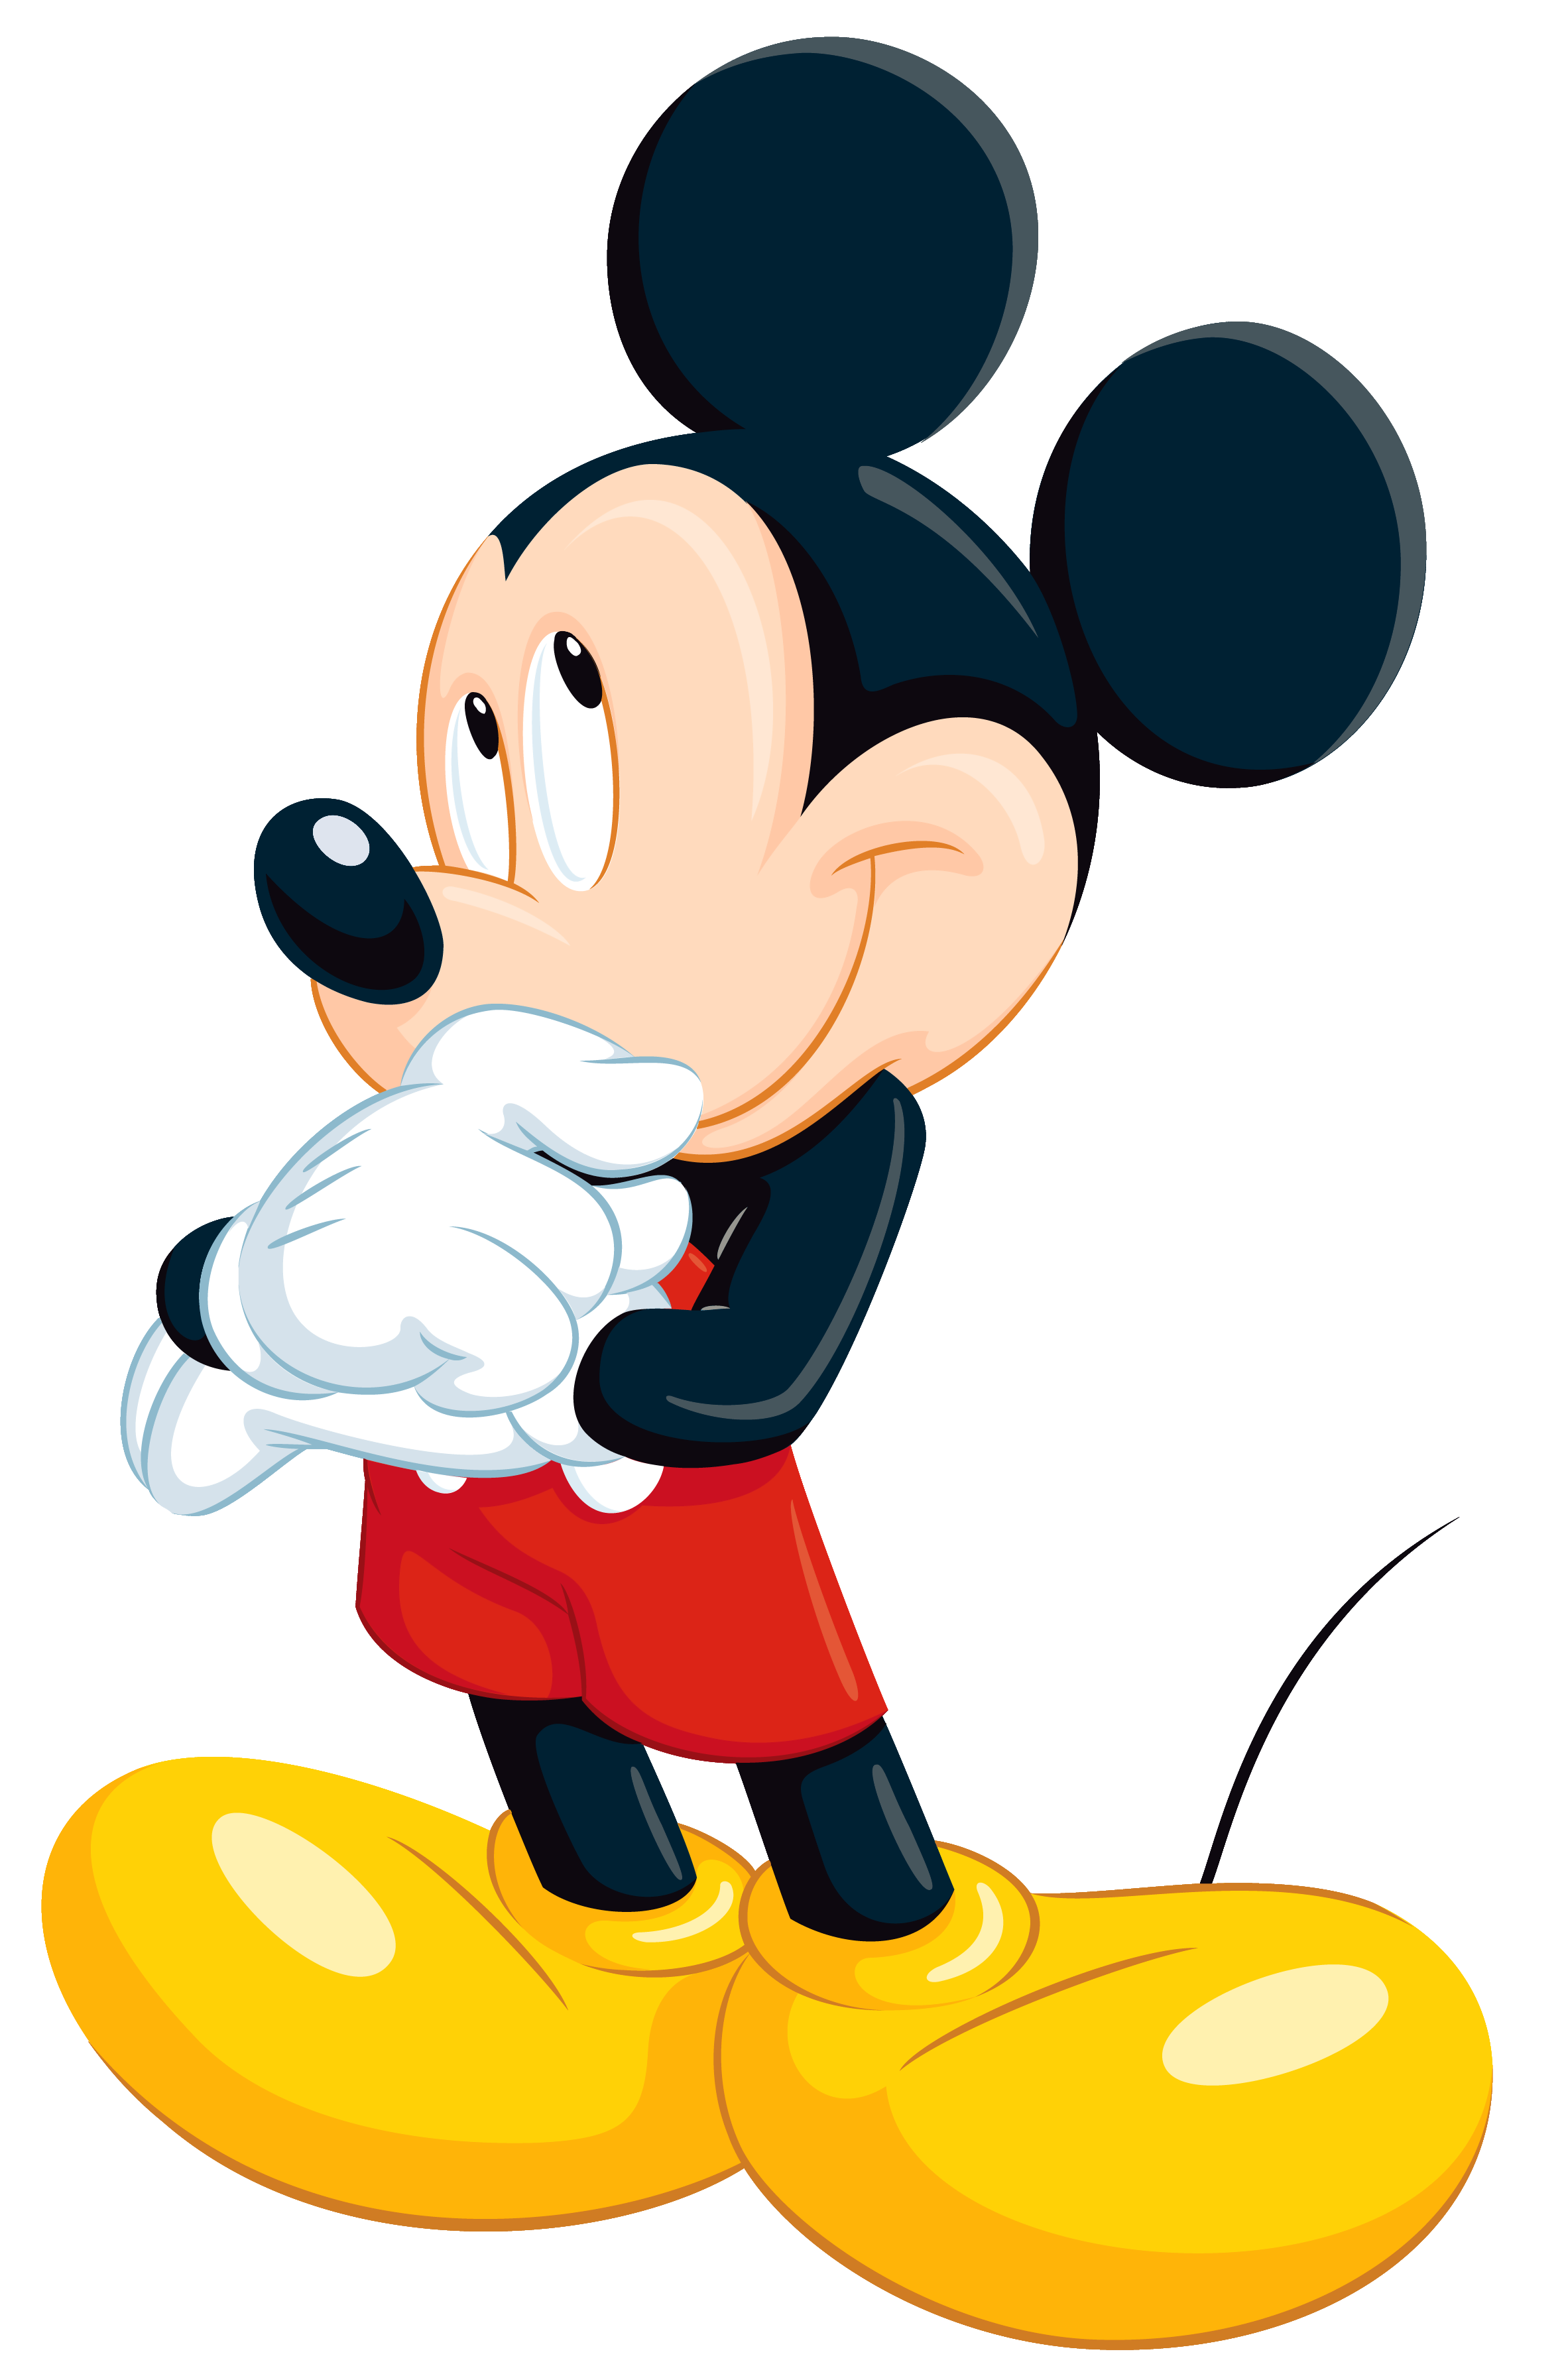 mickey mouse png image  purepng  free transparent cc0